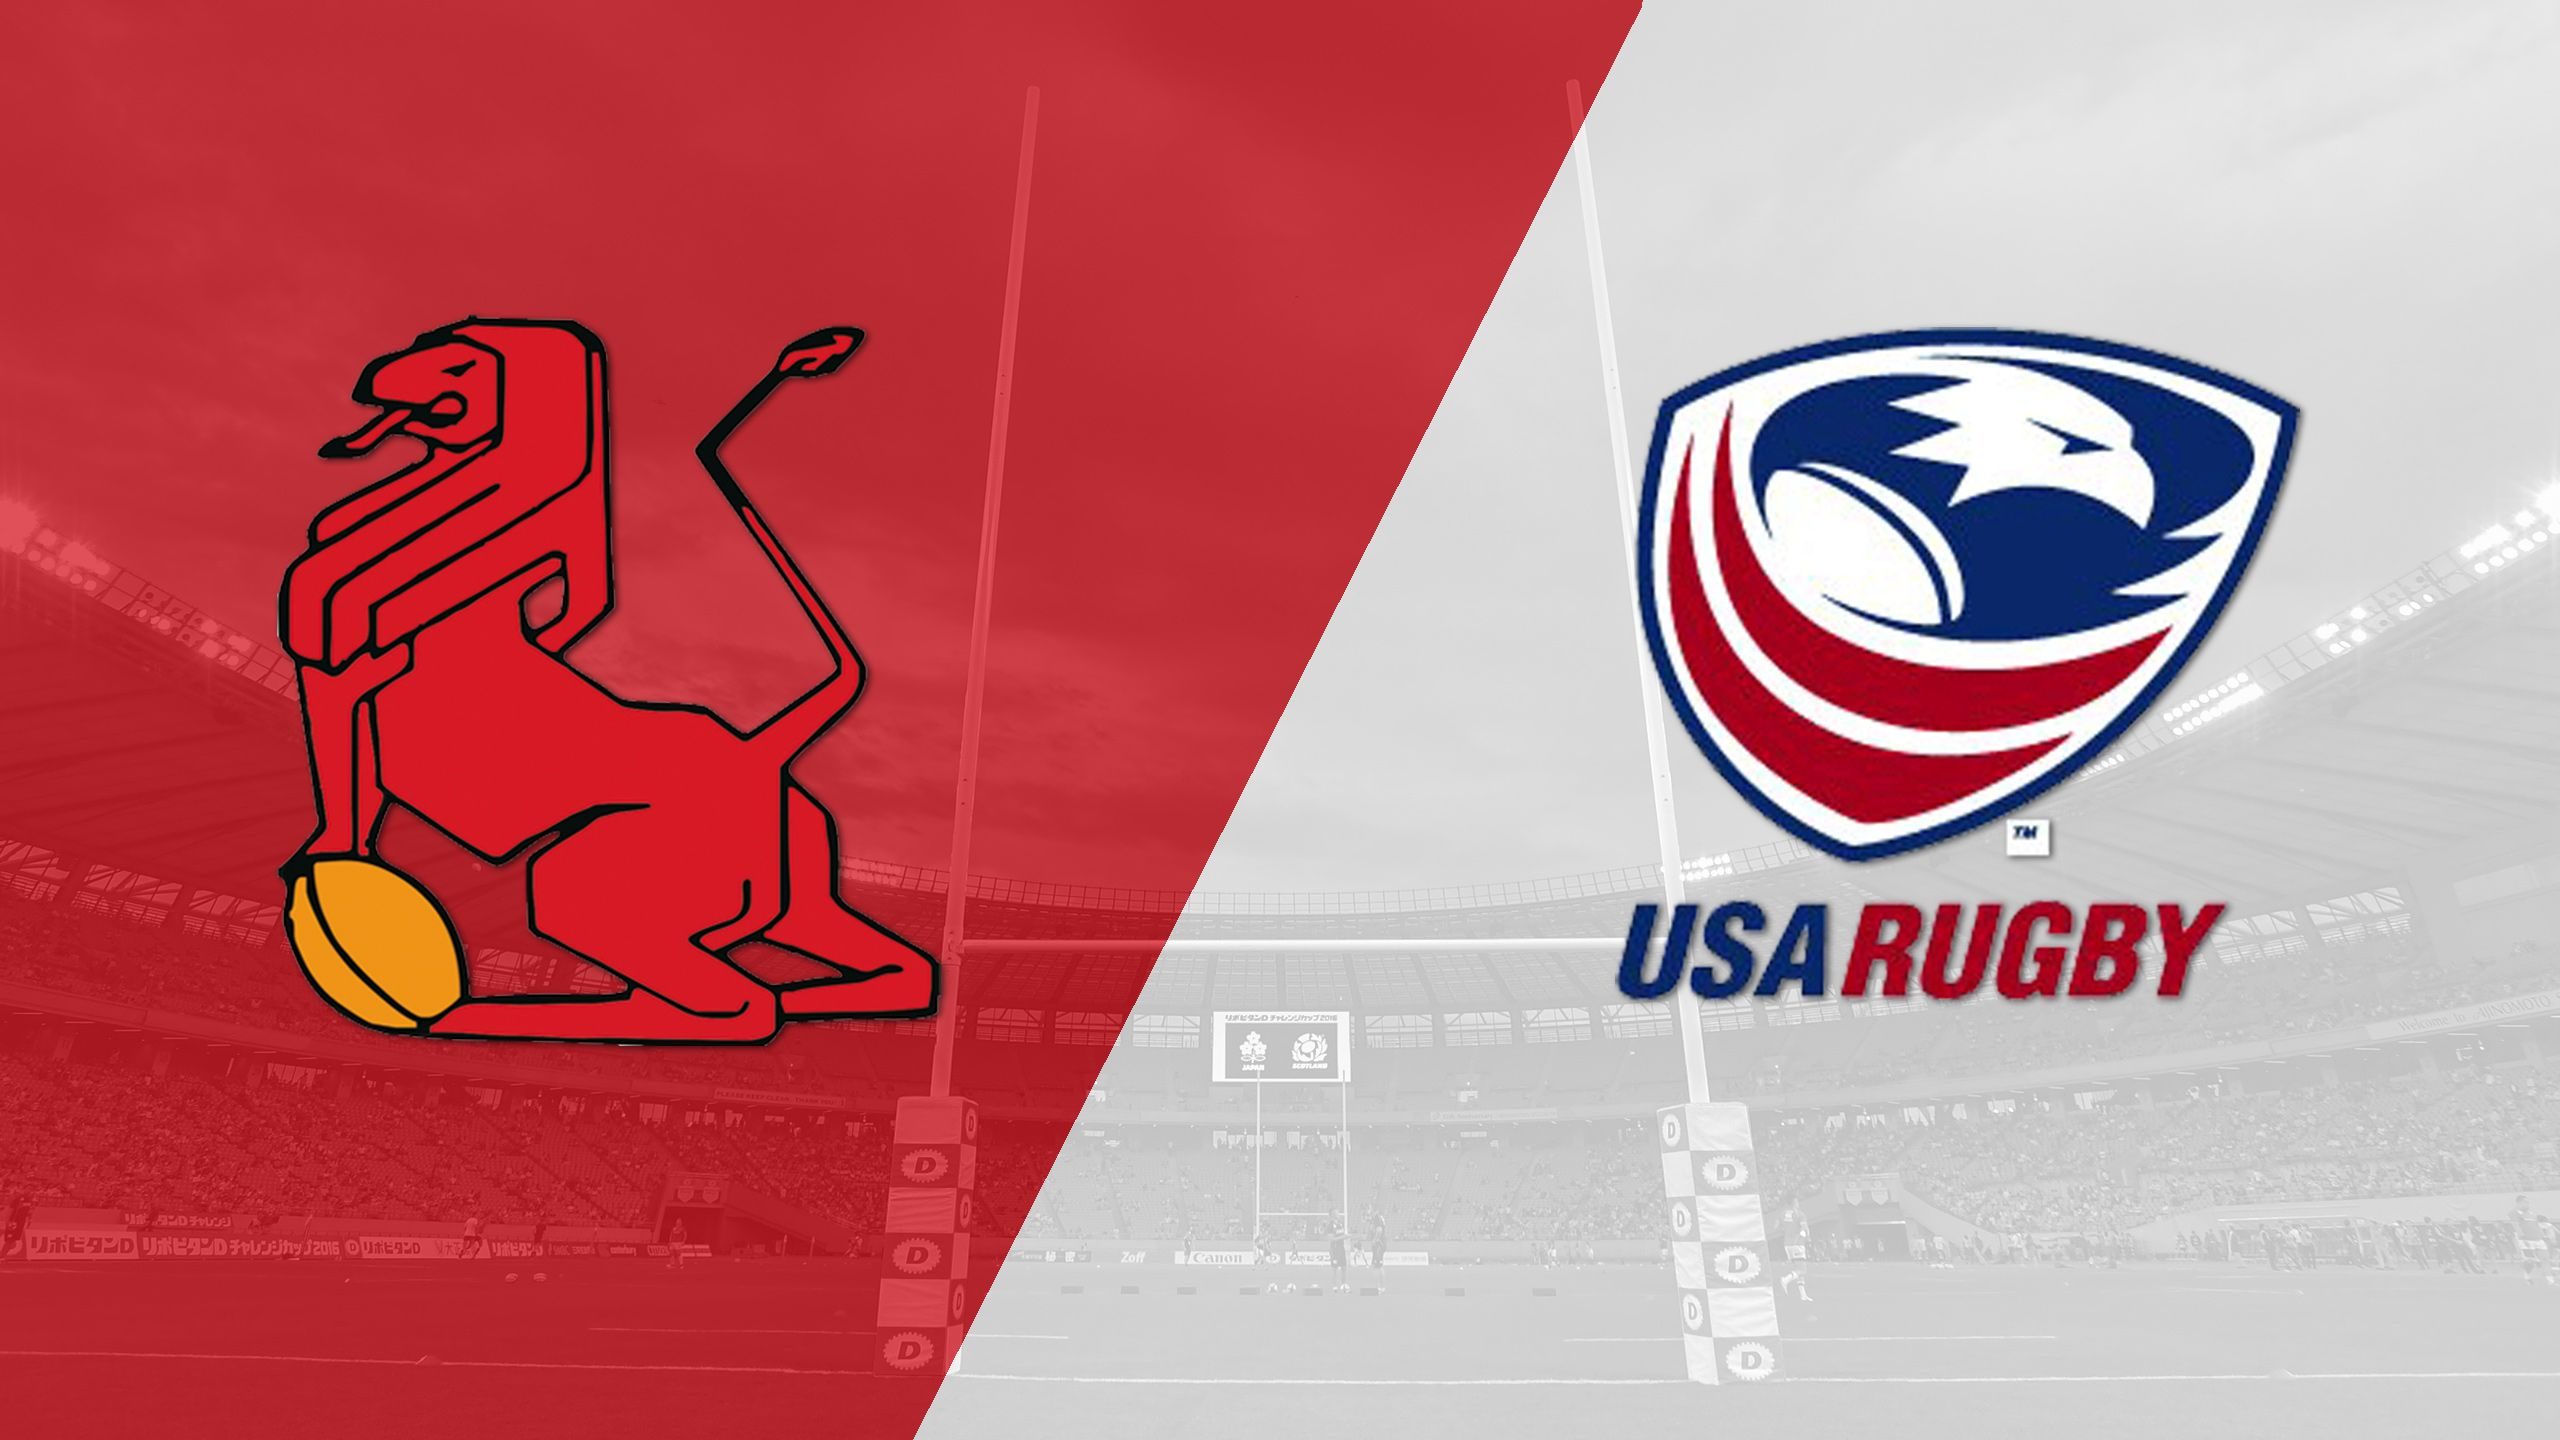 Spain vs. USA (World Rugby Sevens Series)